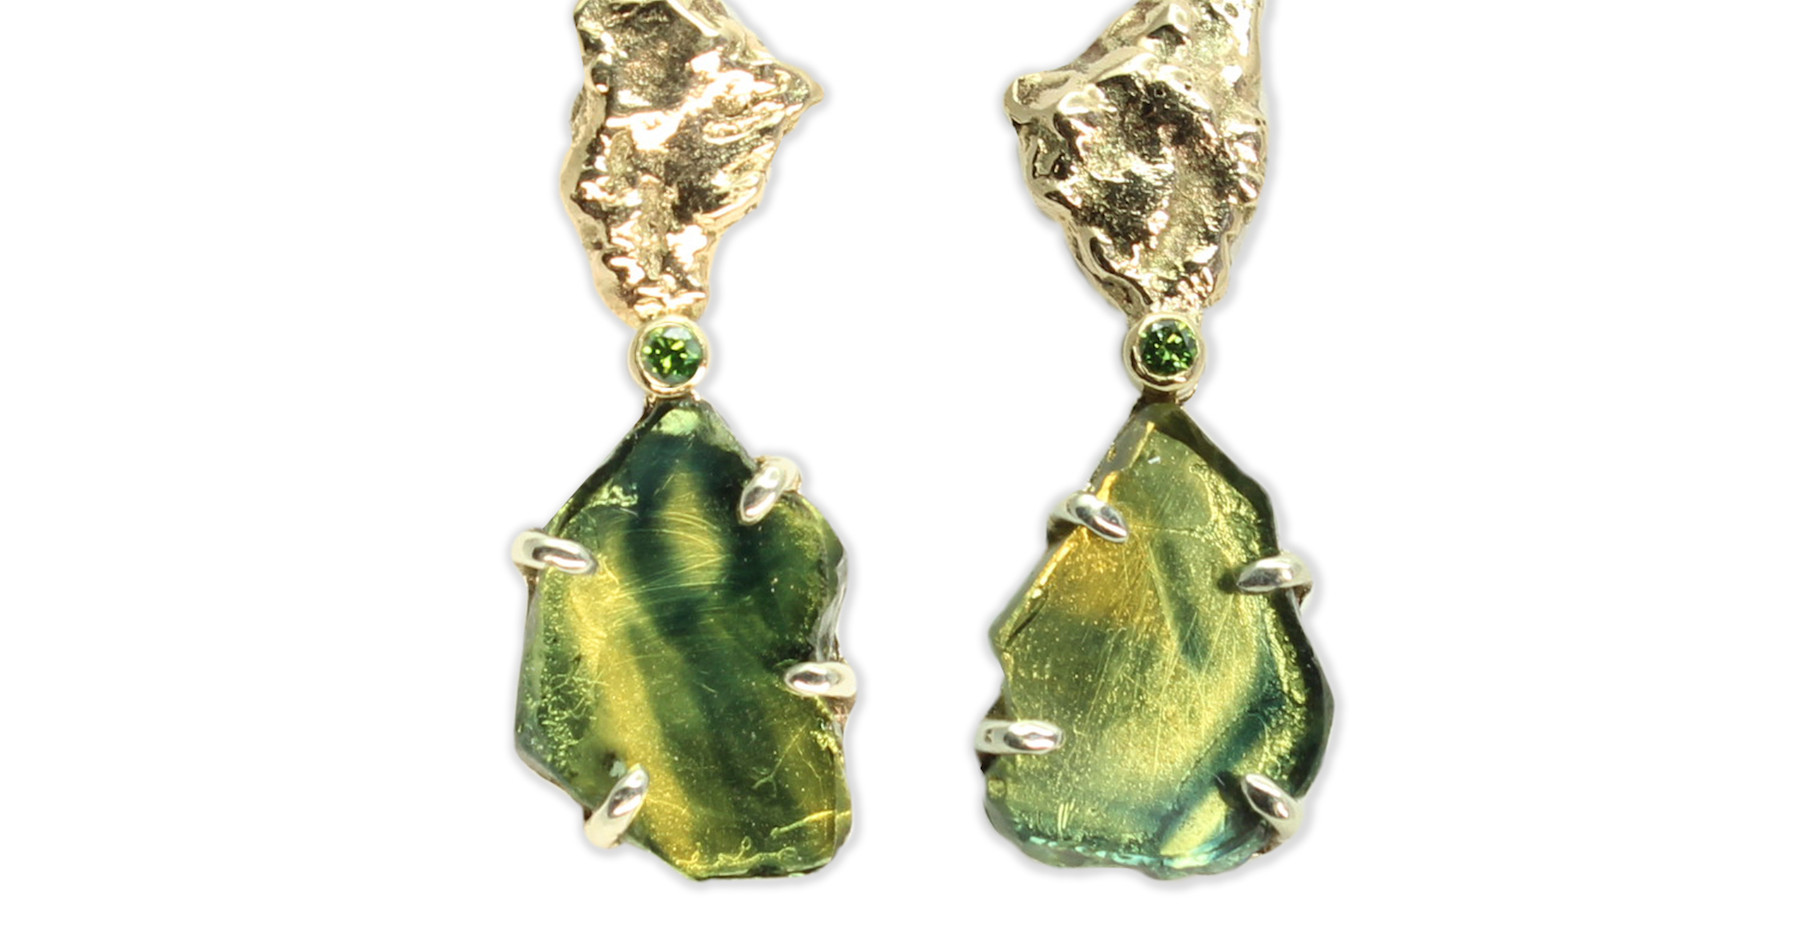 Forrest earrings